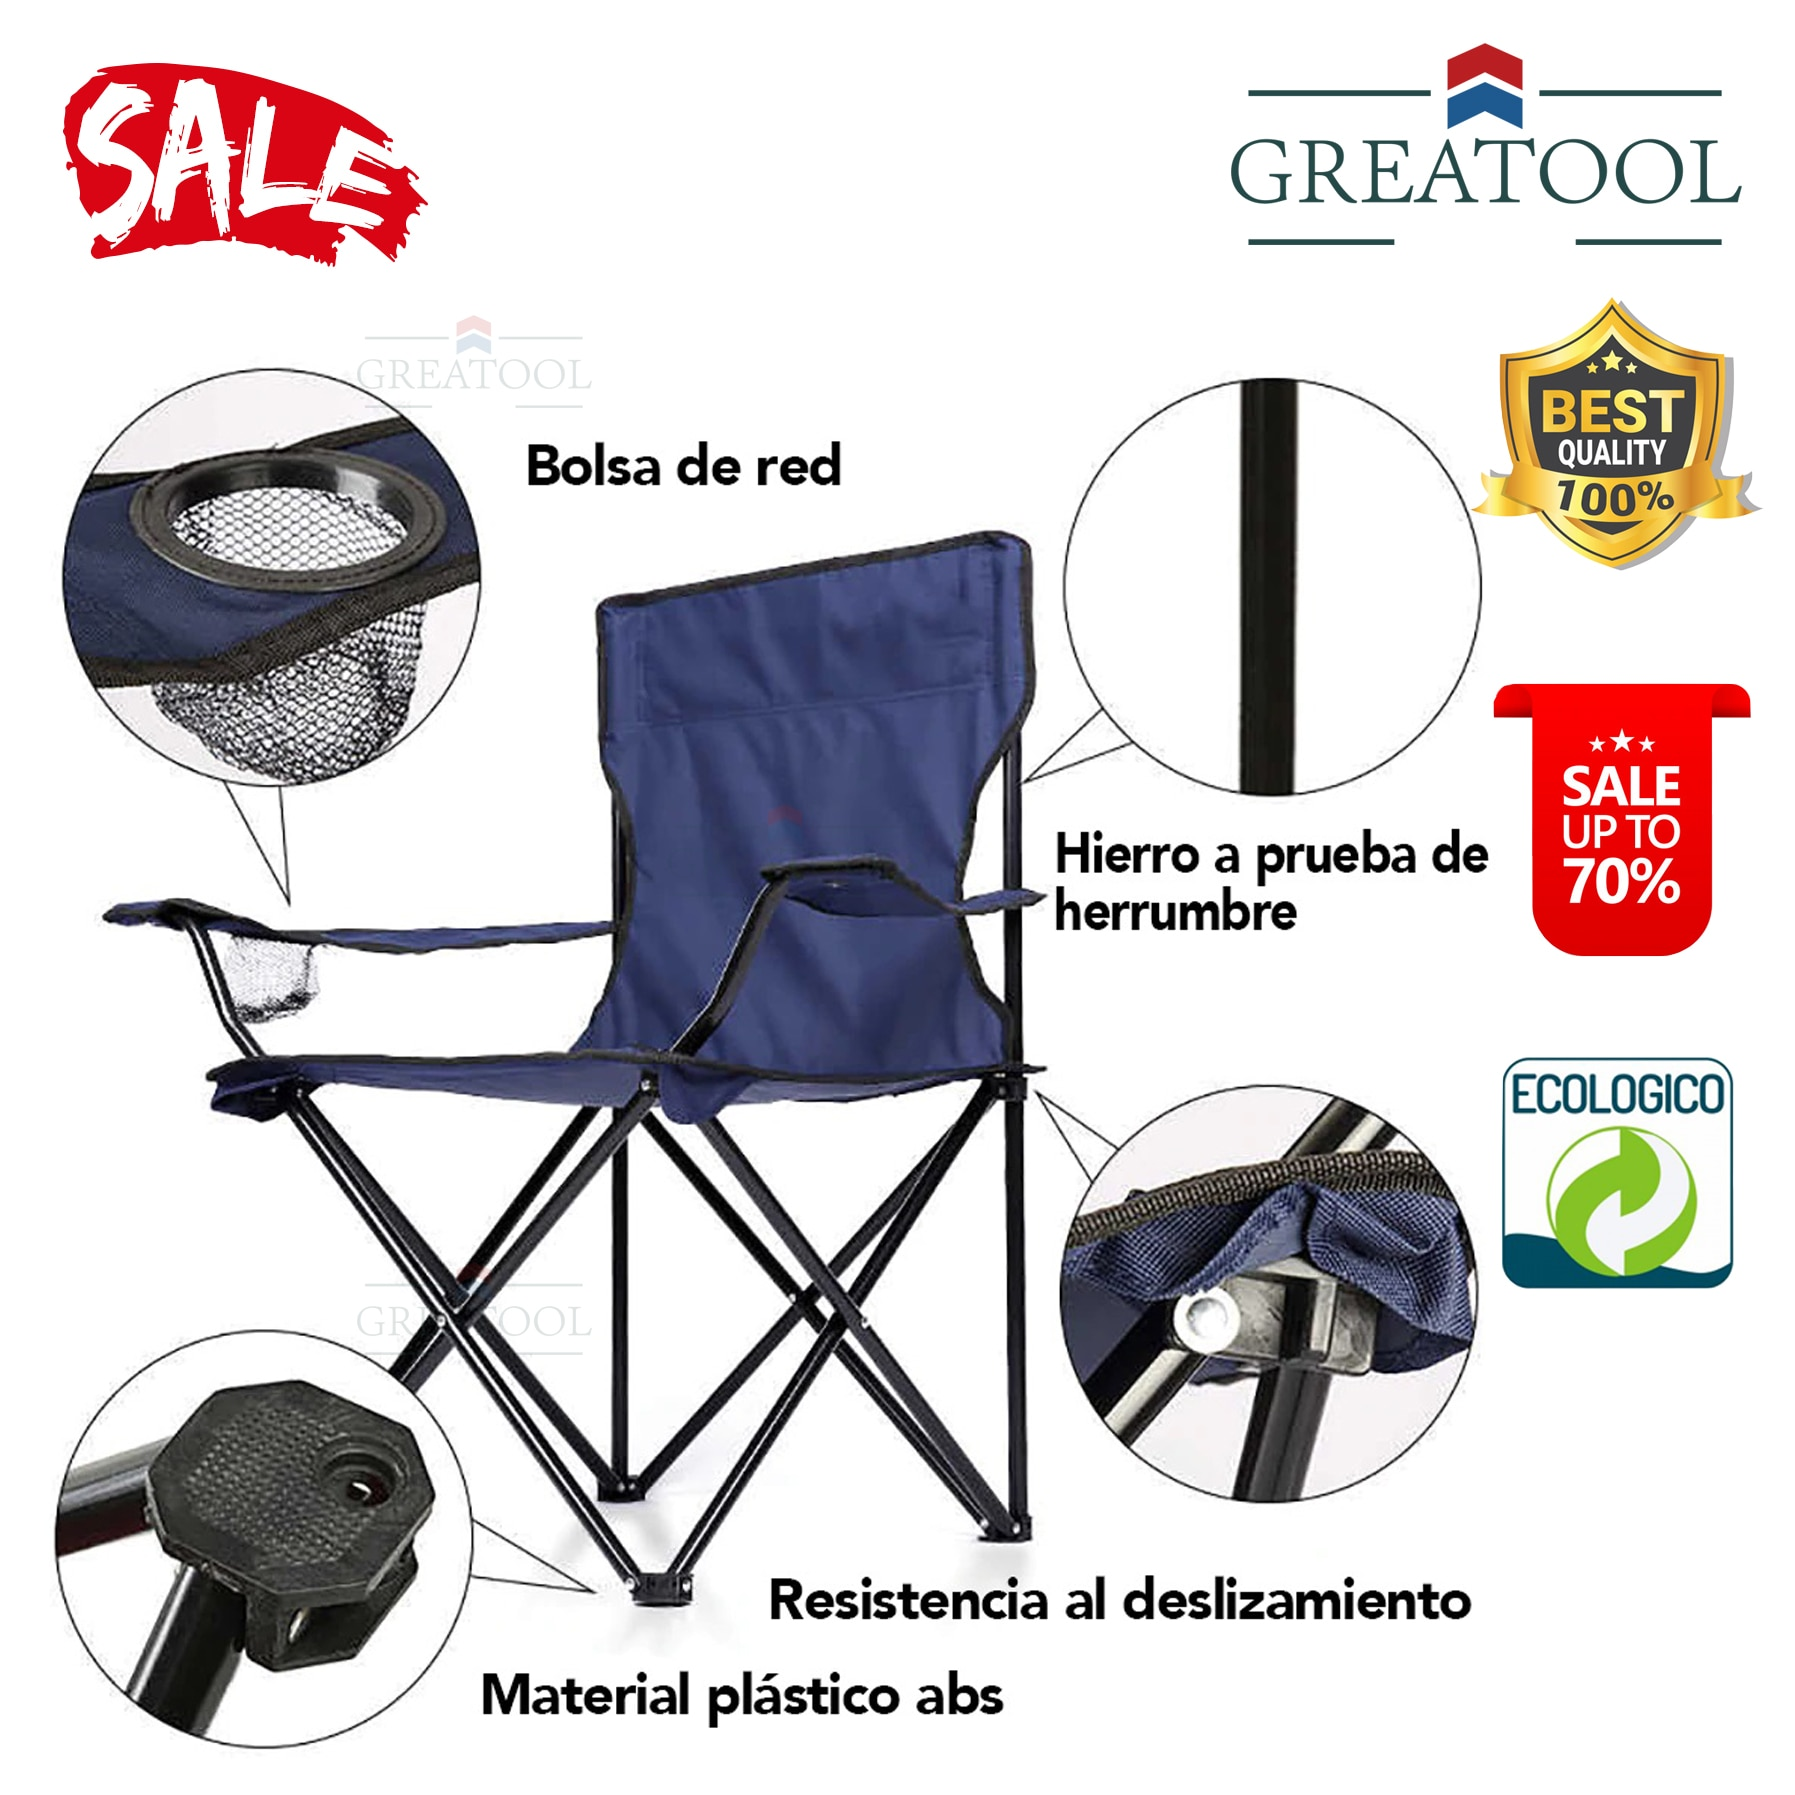 Ultralight Camping folding chair for Camping, portable outdoor fishing beach chair, aluminum alloy, Picnic Garden enlarge